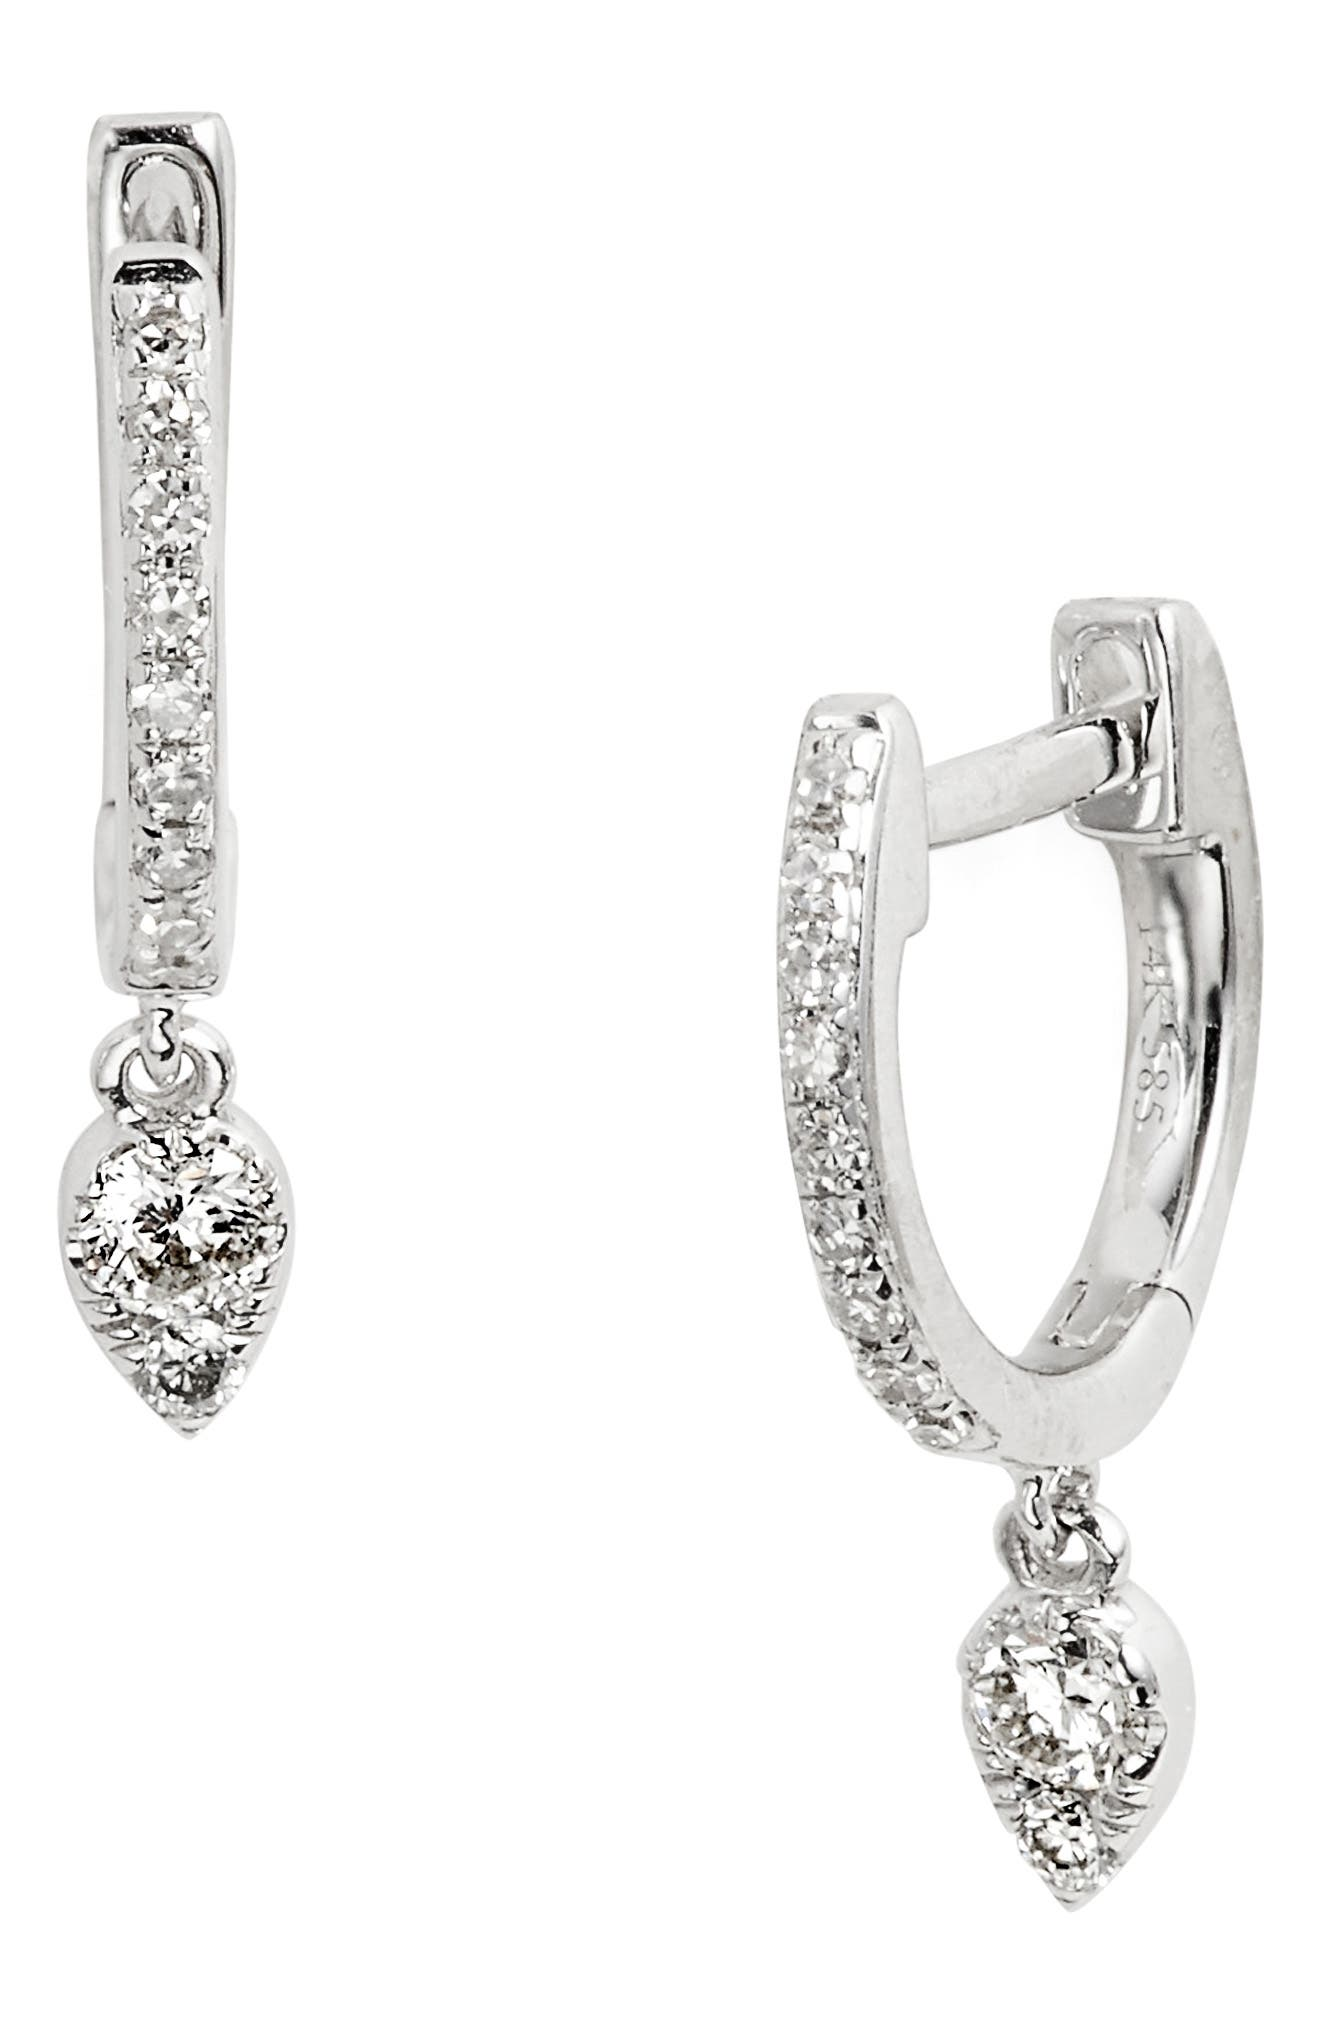 EF COLLECTION Diamond Teardrop Earrings